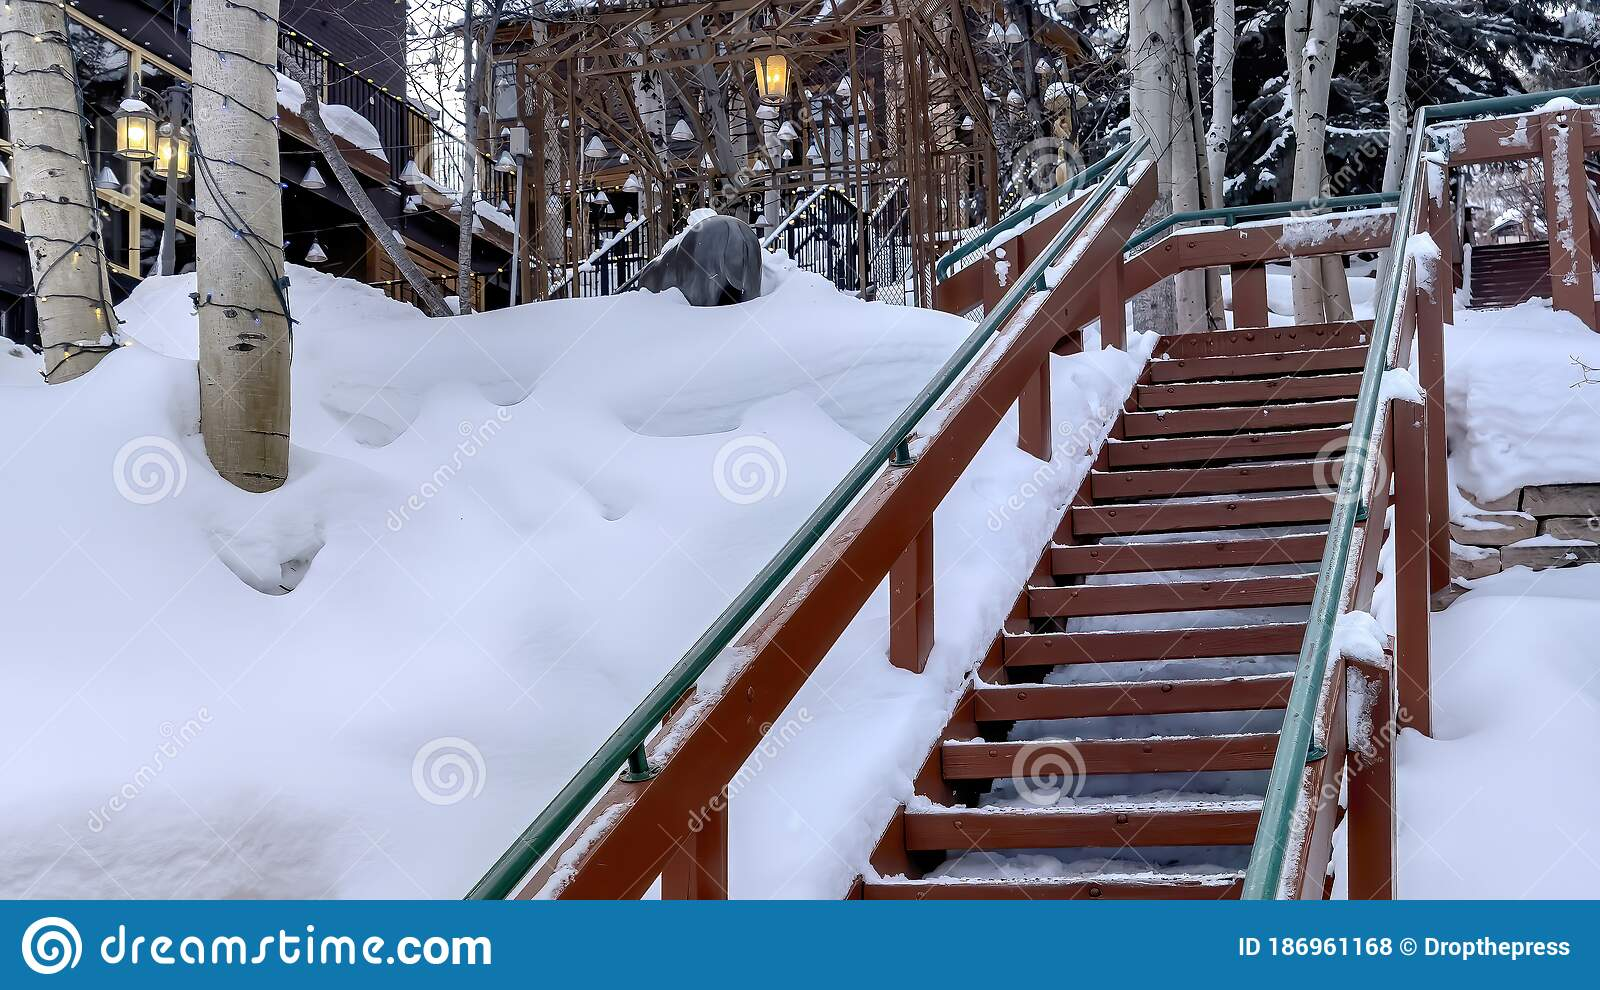 Image of: Panorama Outdoor Stairs On Snowy Slope Against Buildings And Trees On Cloudy Winter Day Stock Photo Image Of Snowy Cloudy 186961168